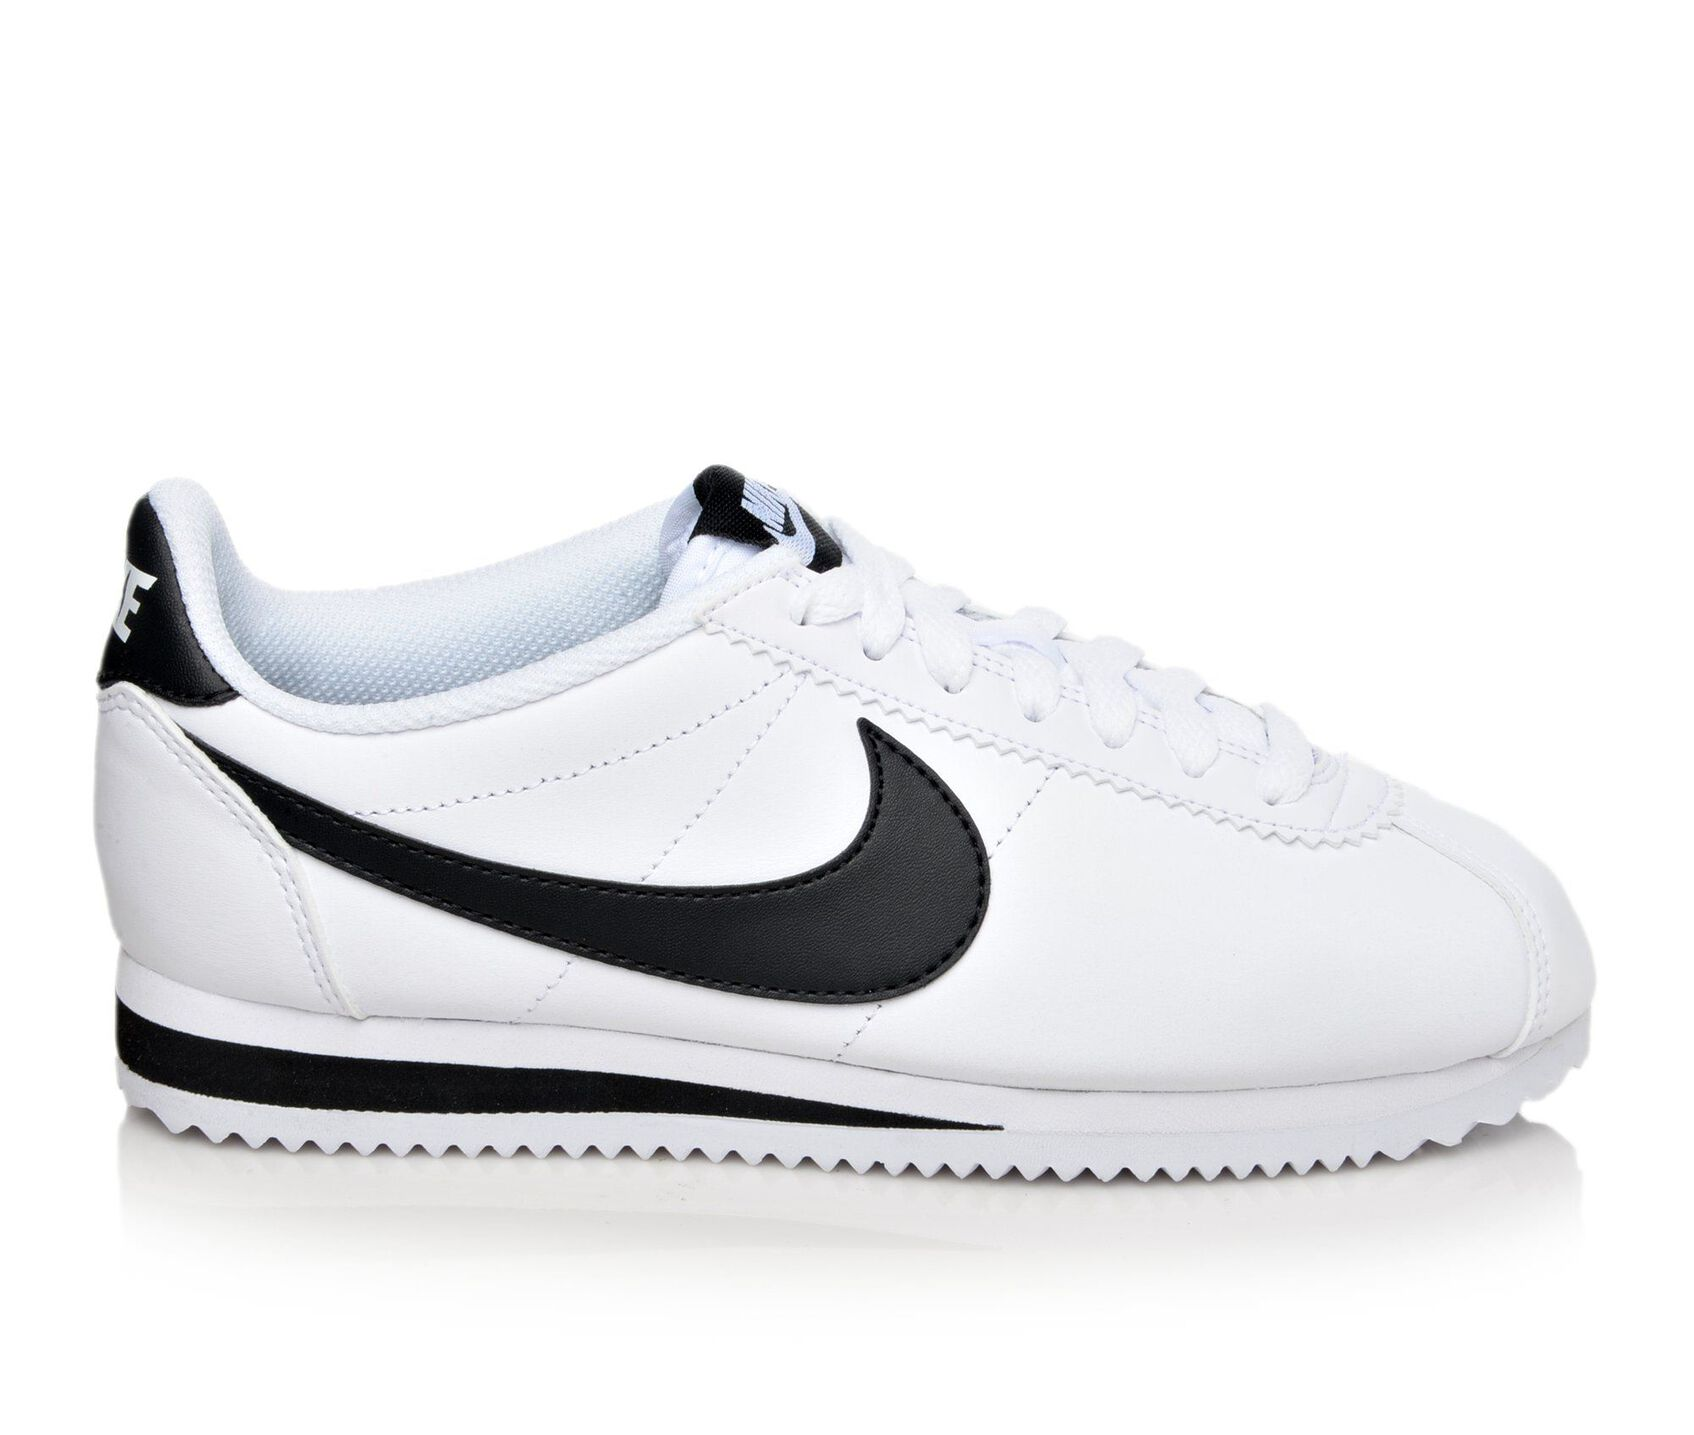 no sale tax shopping buy popular Women's Nike Classic Cortez Leather Sneakers